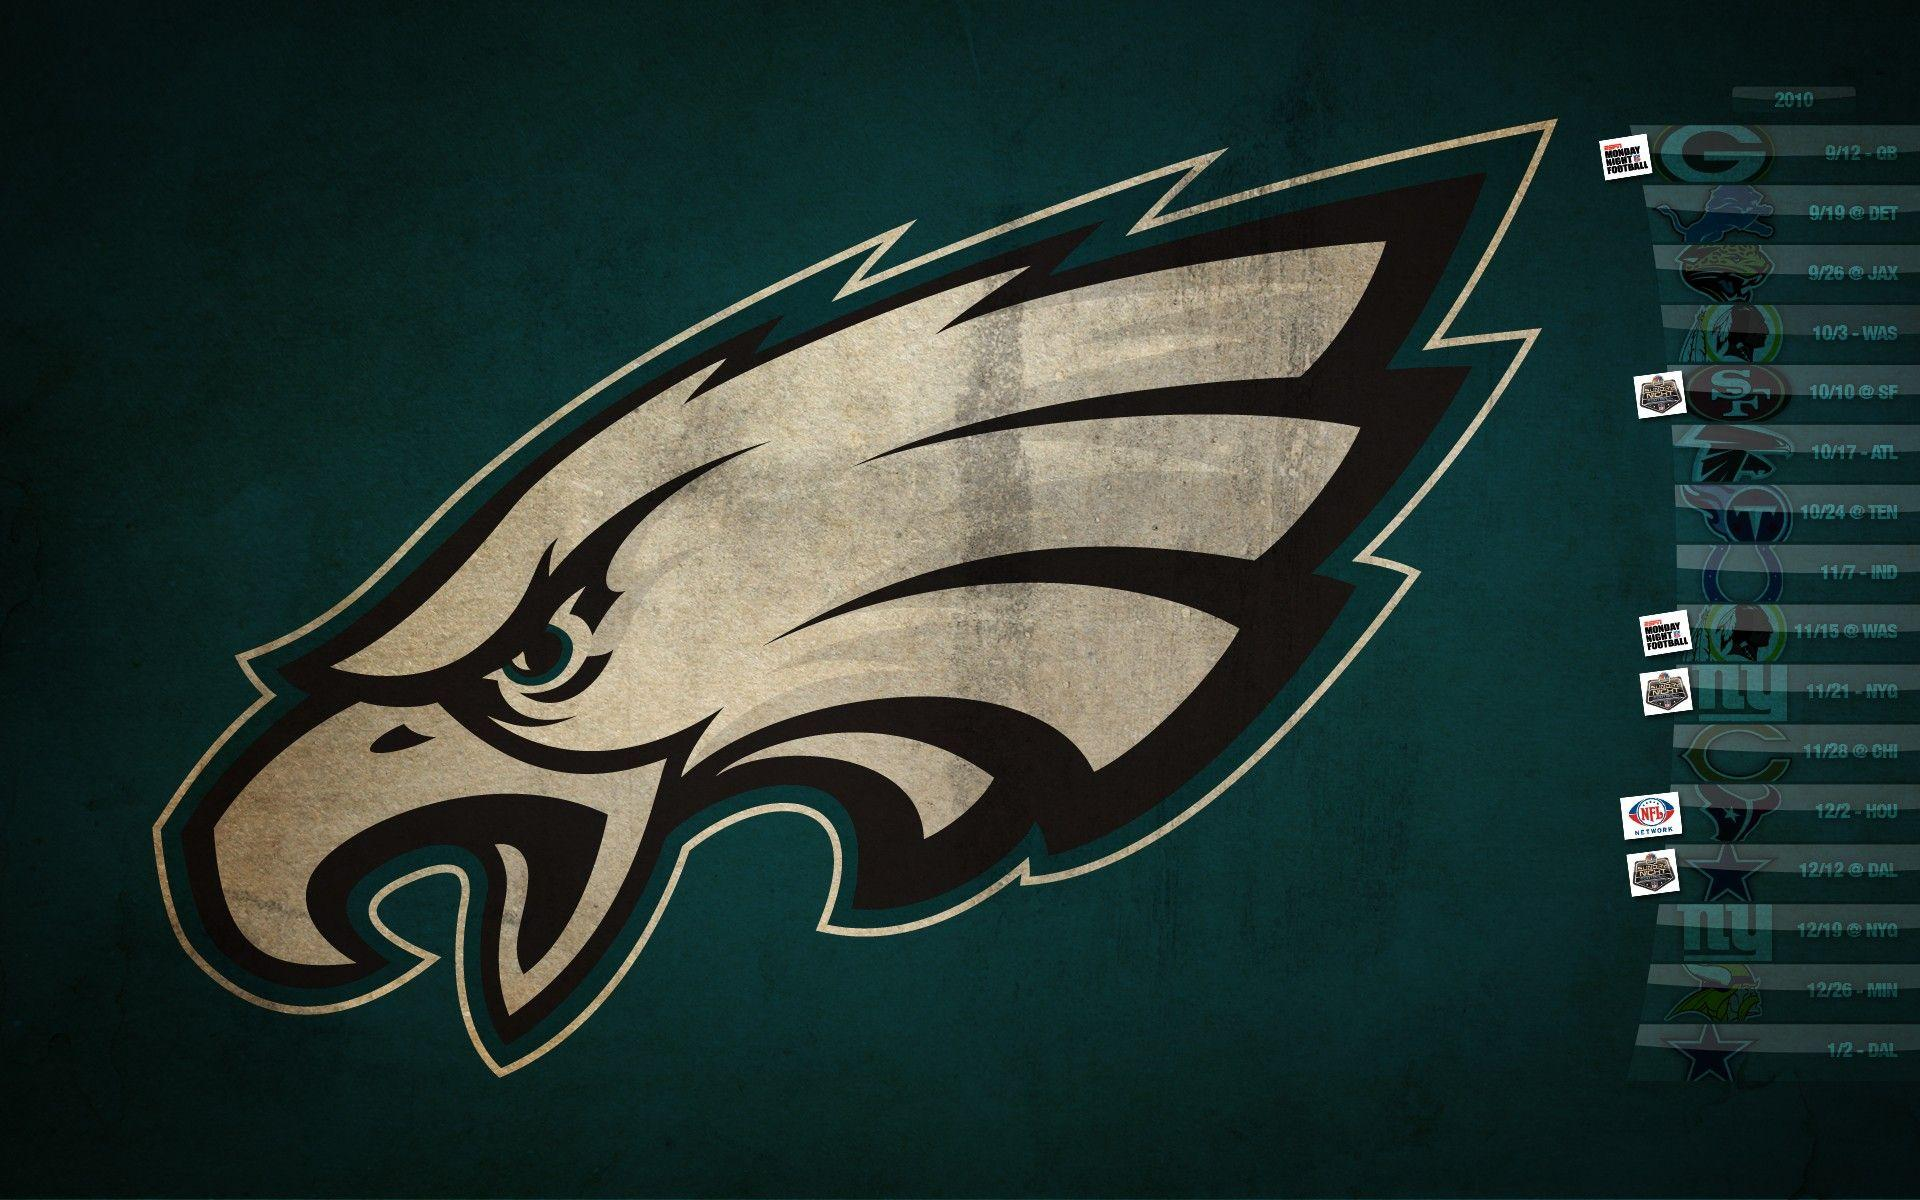 Philadelphia Eagles Wallpapers - Full HD wallpaper search